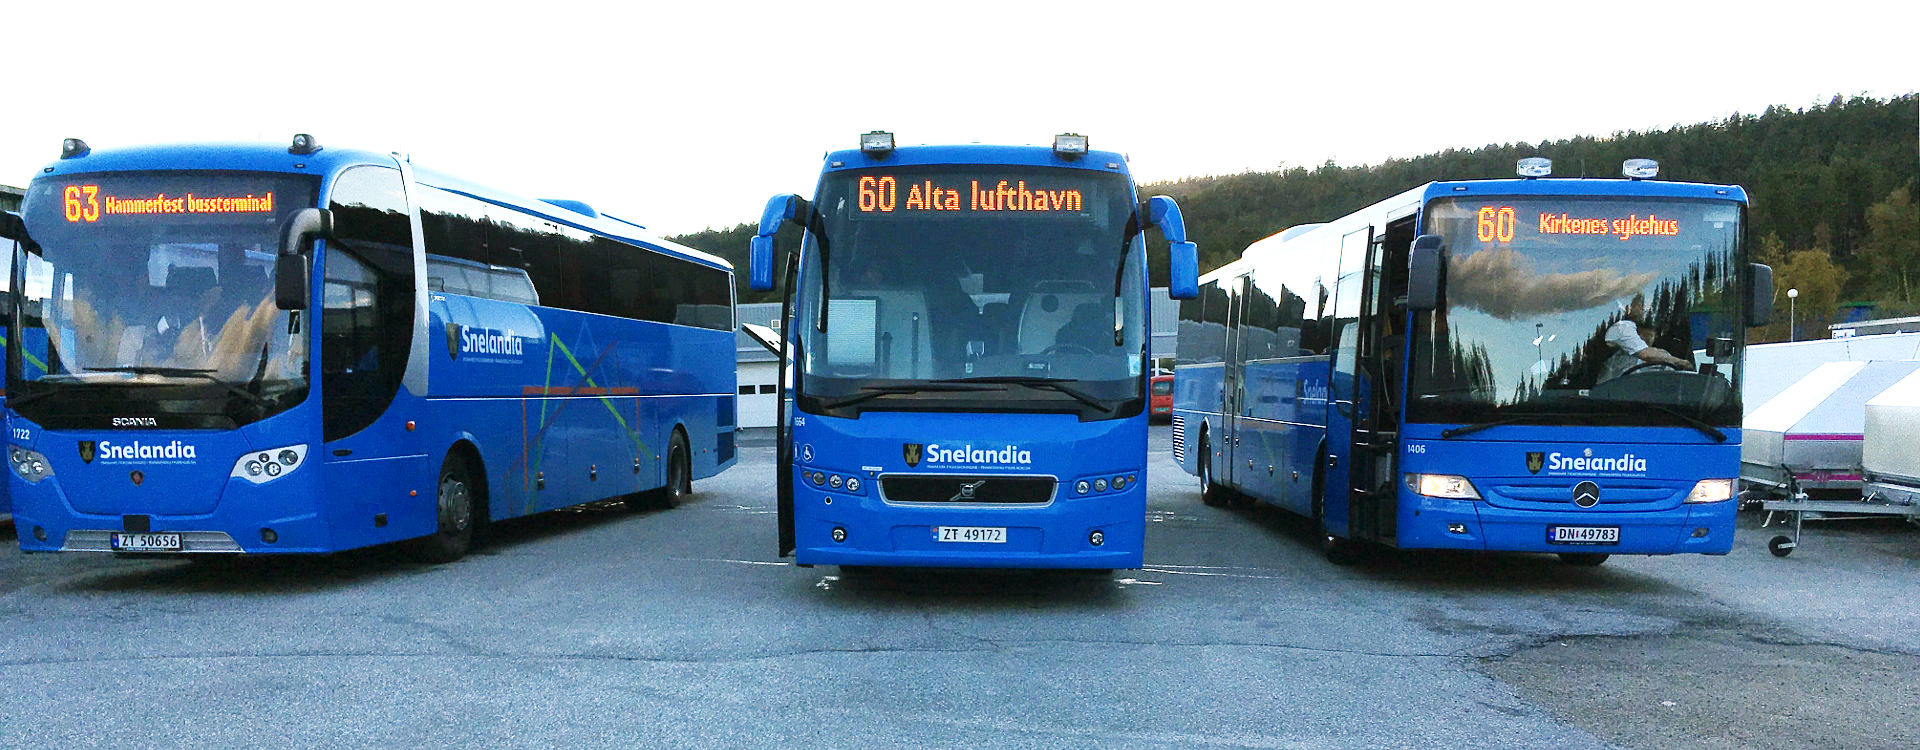 f0d8fd446dc How to get to Kirkenes by bus